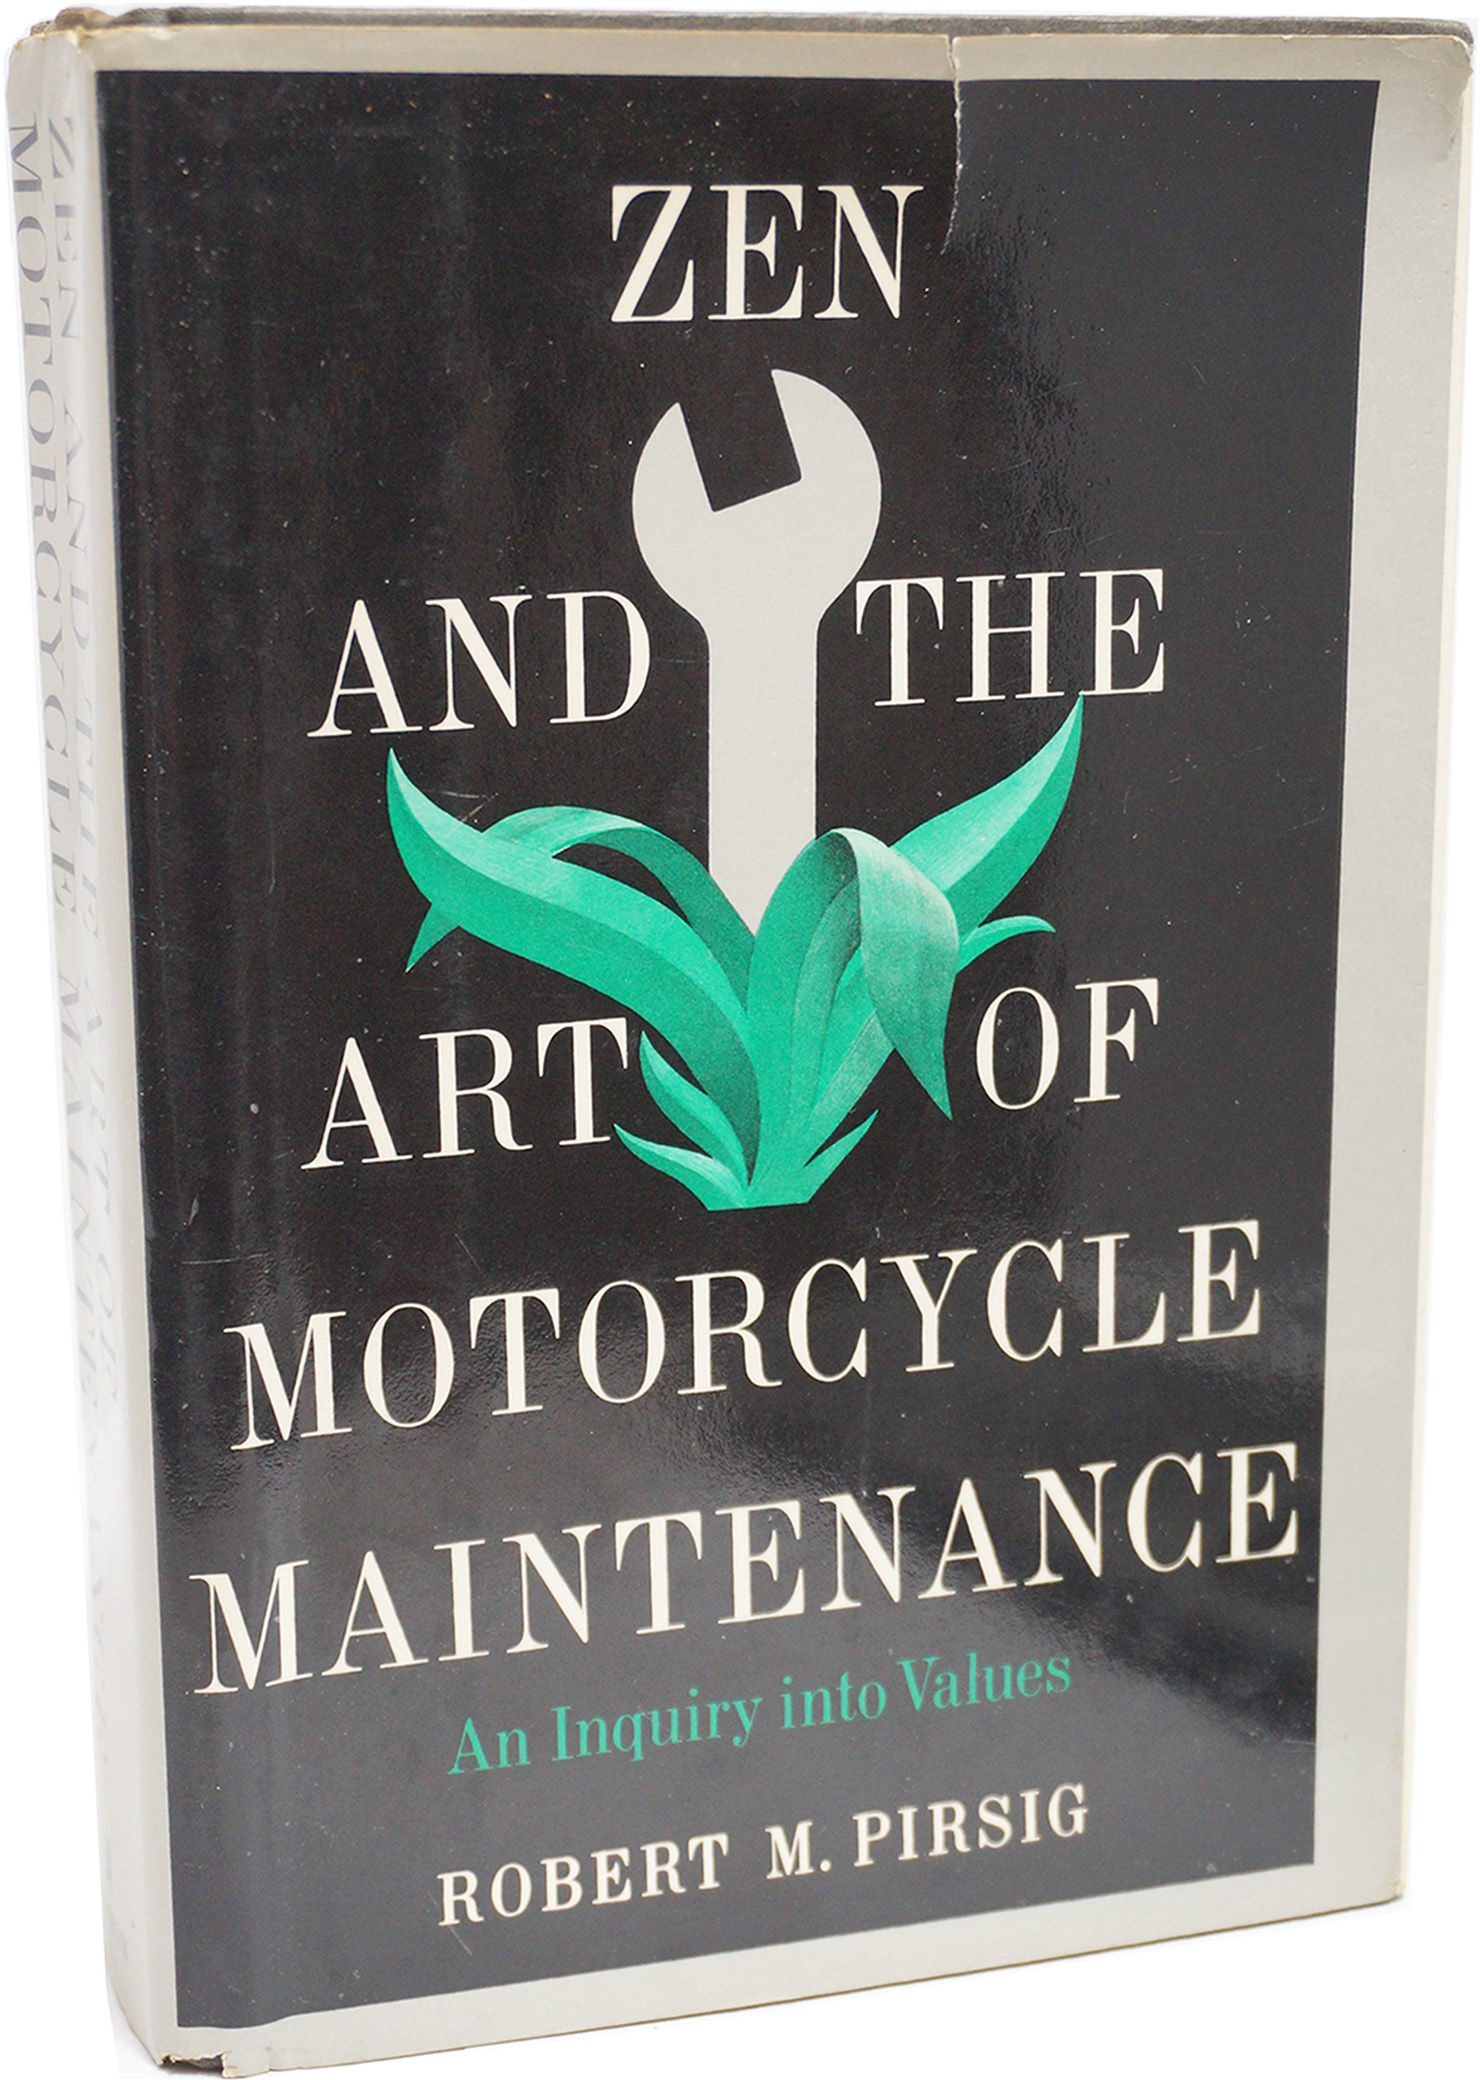 Books/Zen and the Art of Motorcycle Maintenance.jpg